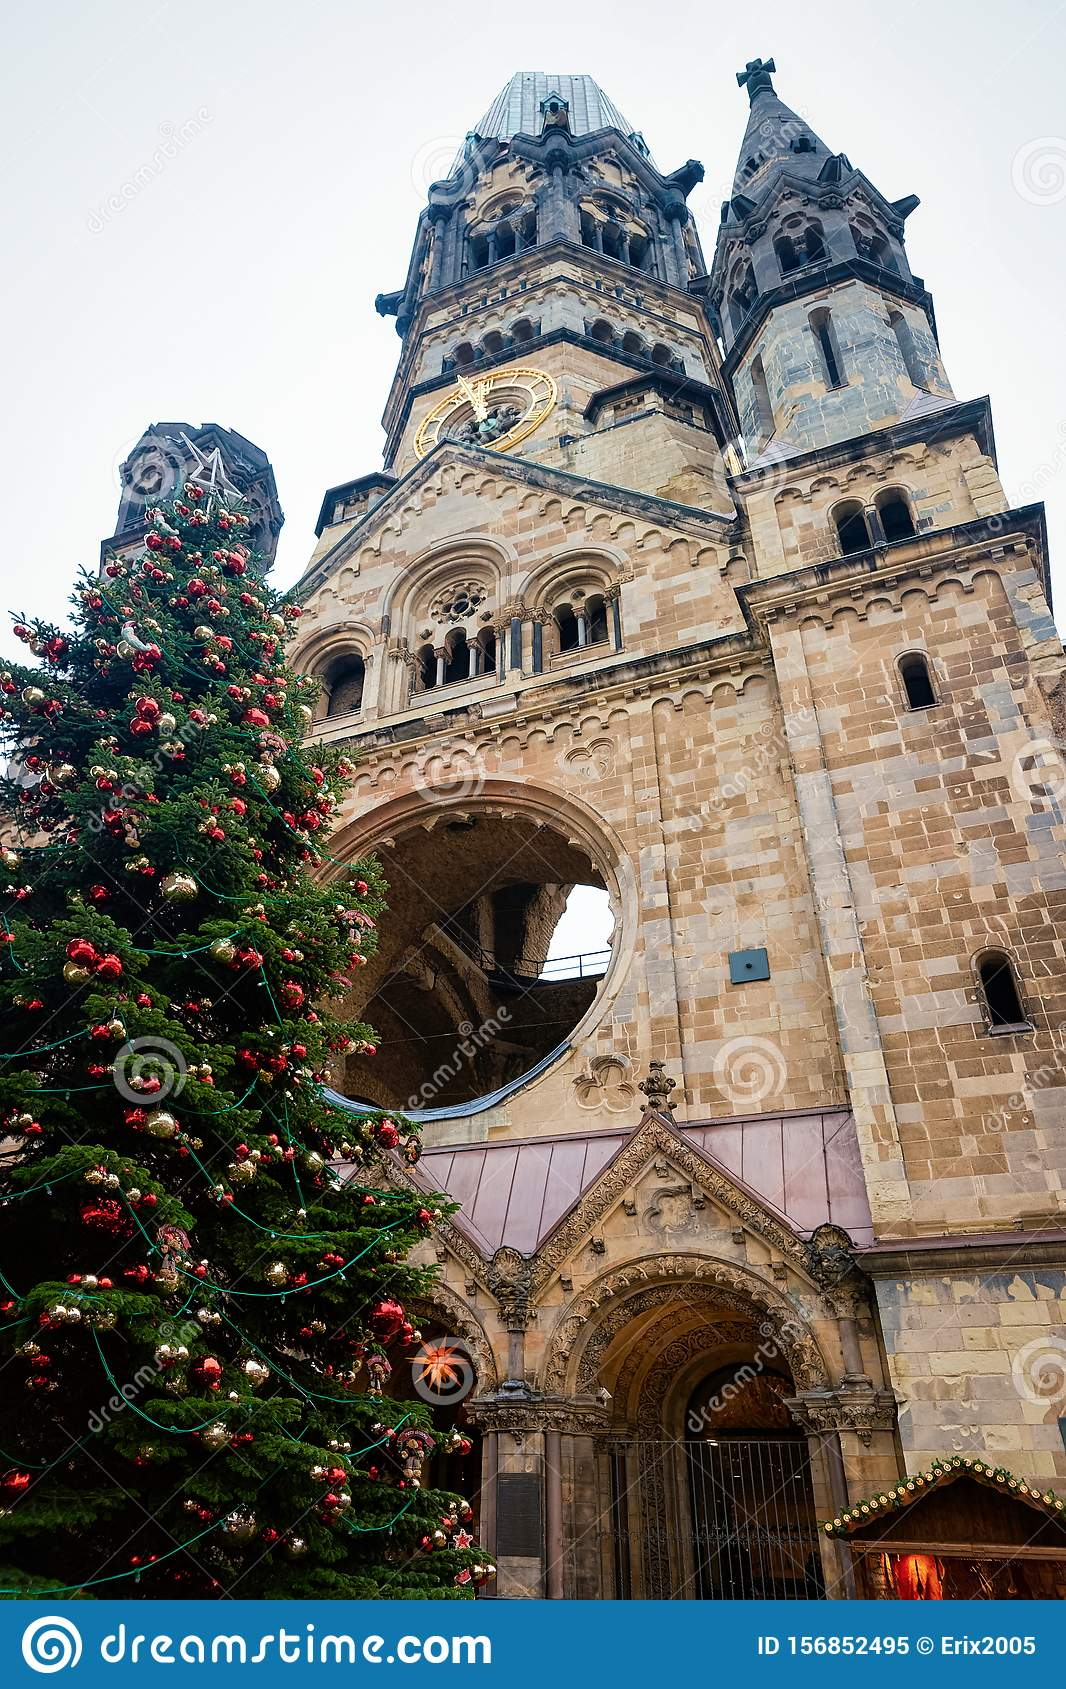 Christmas Tree With Decorations At Kaiser Wilhelm Memorial